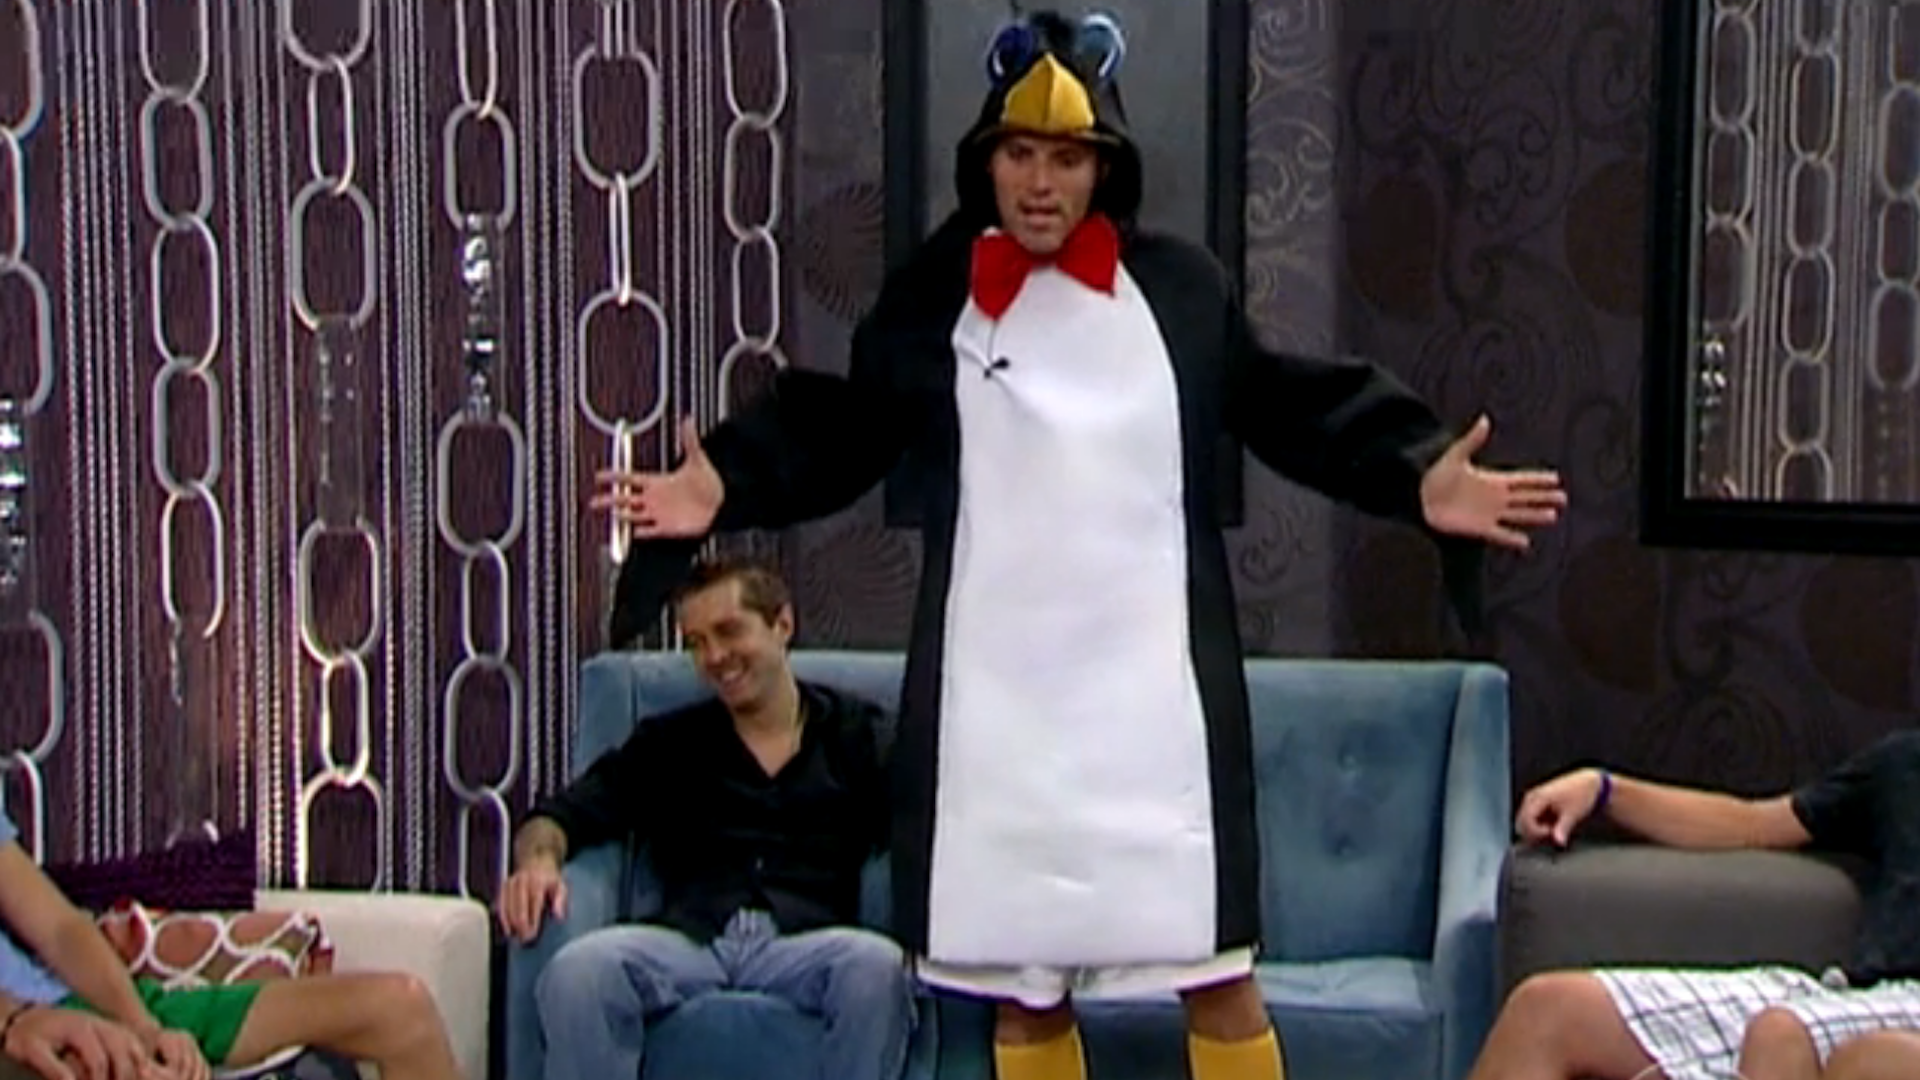 Enzo Palumbo's penguin costume